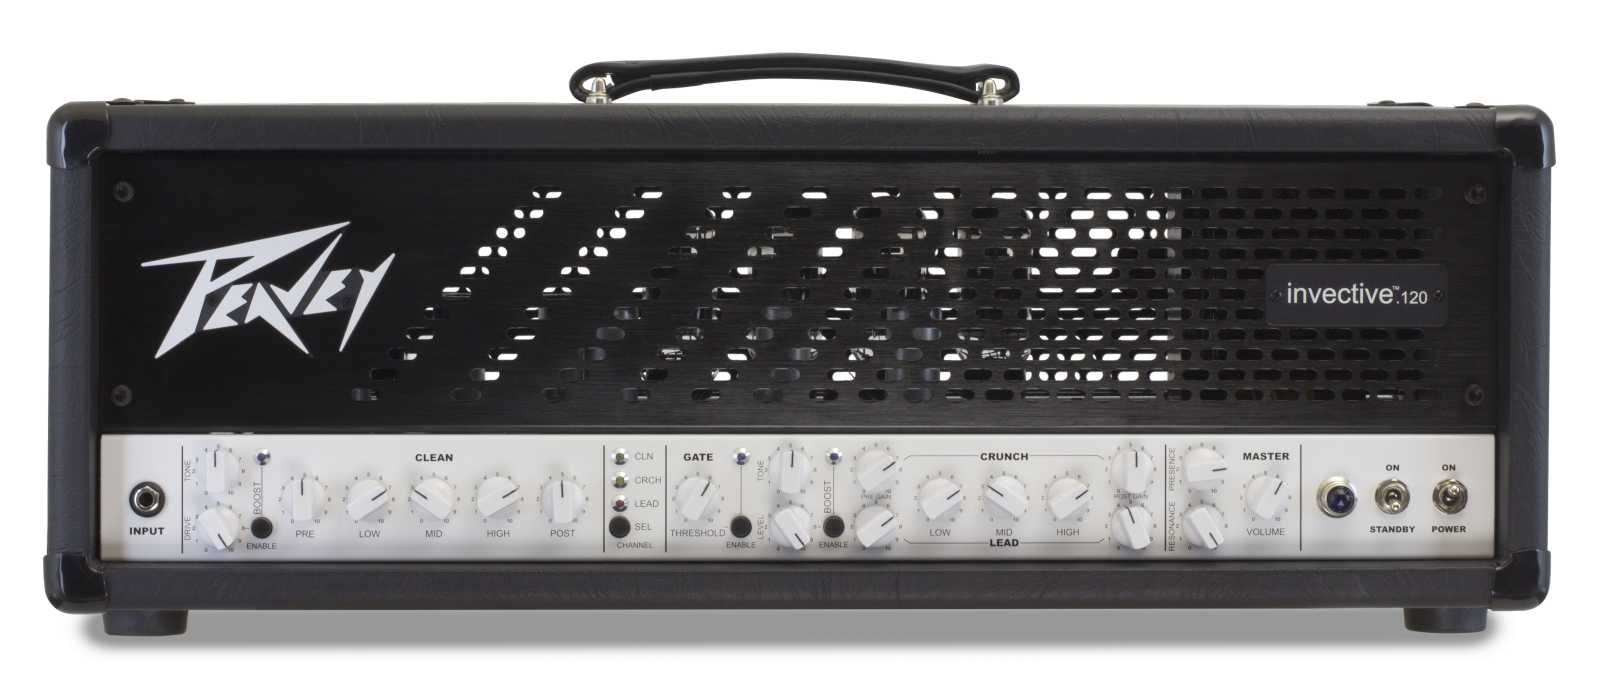 Peavey invective .120 Topteil